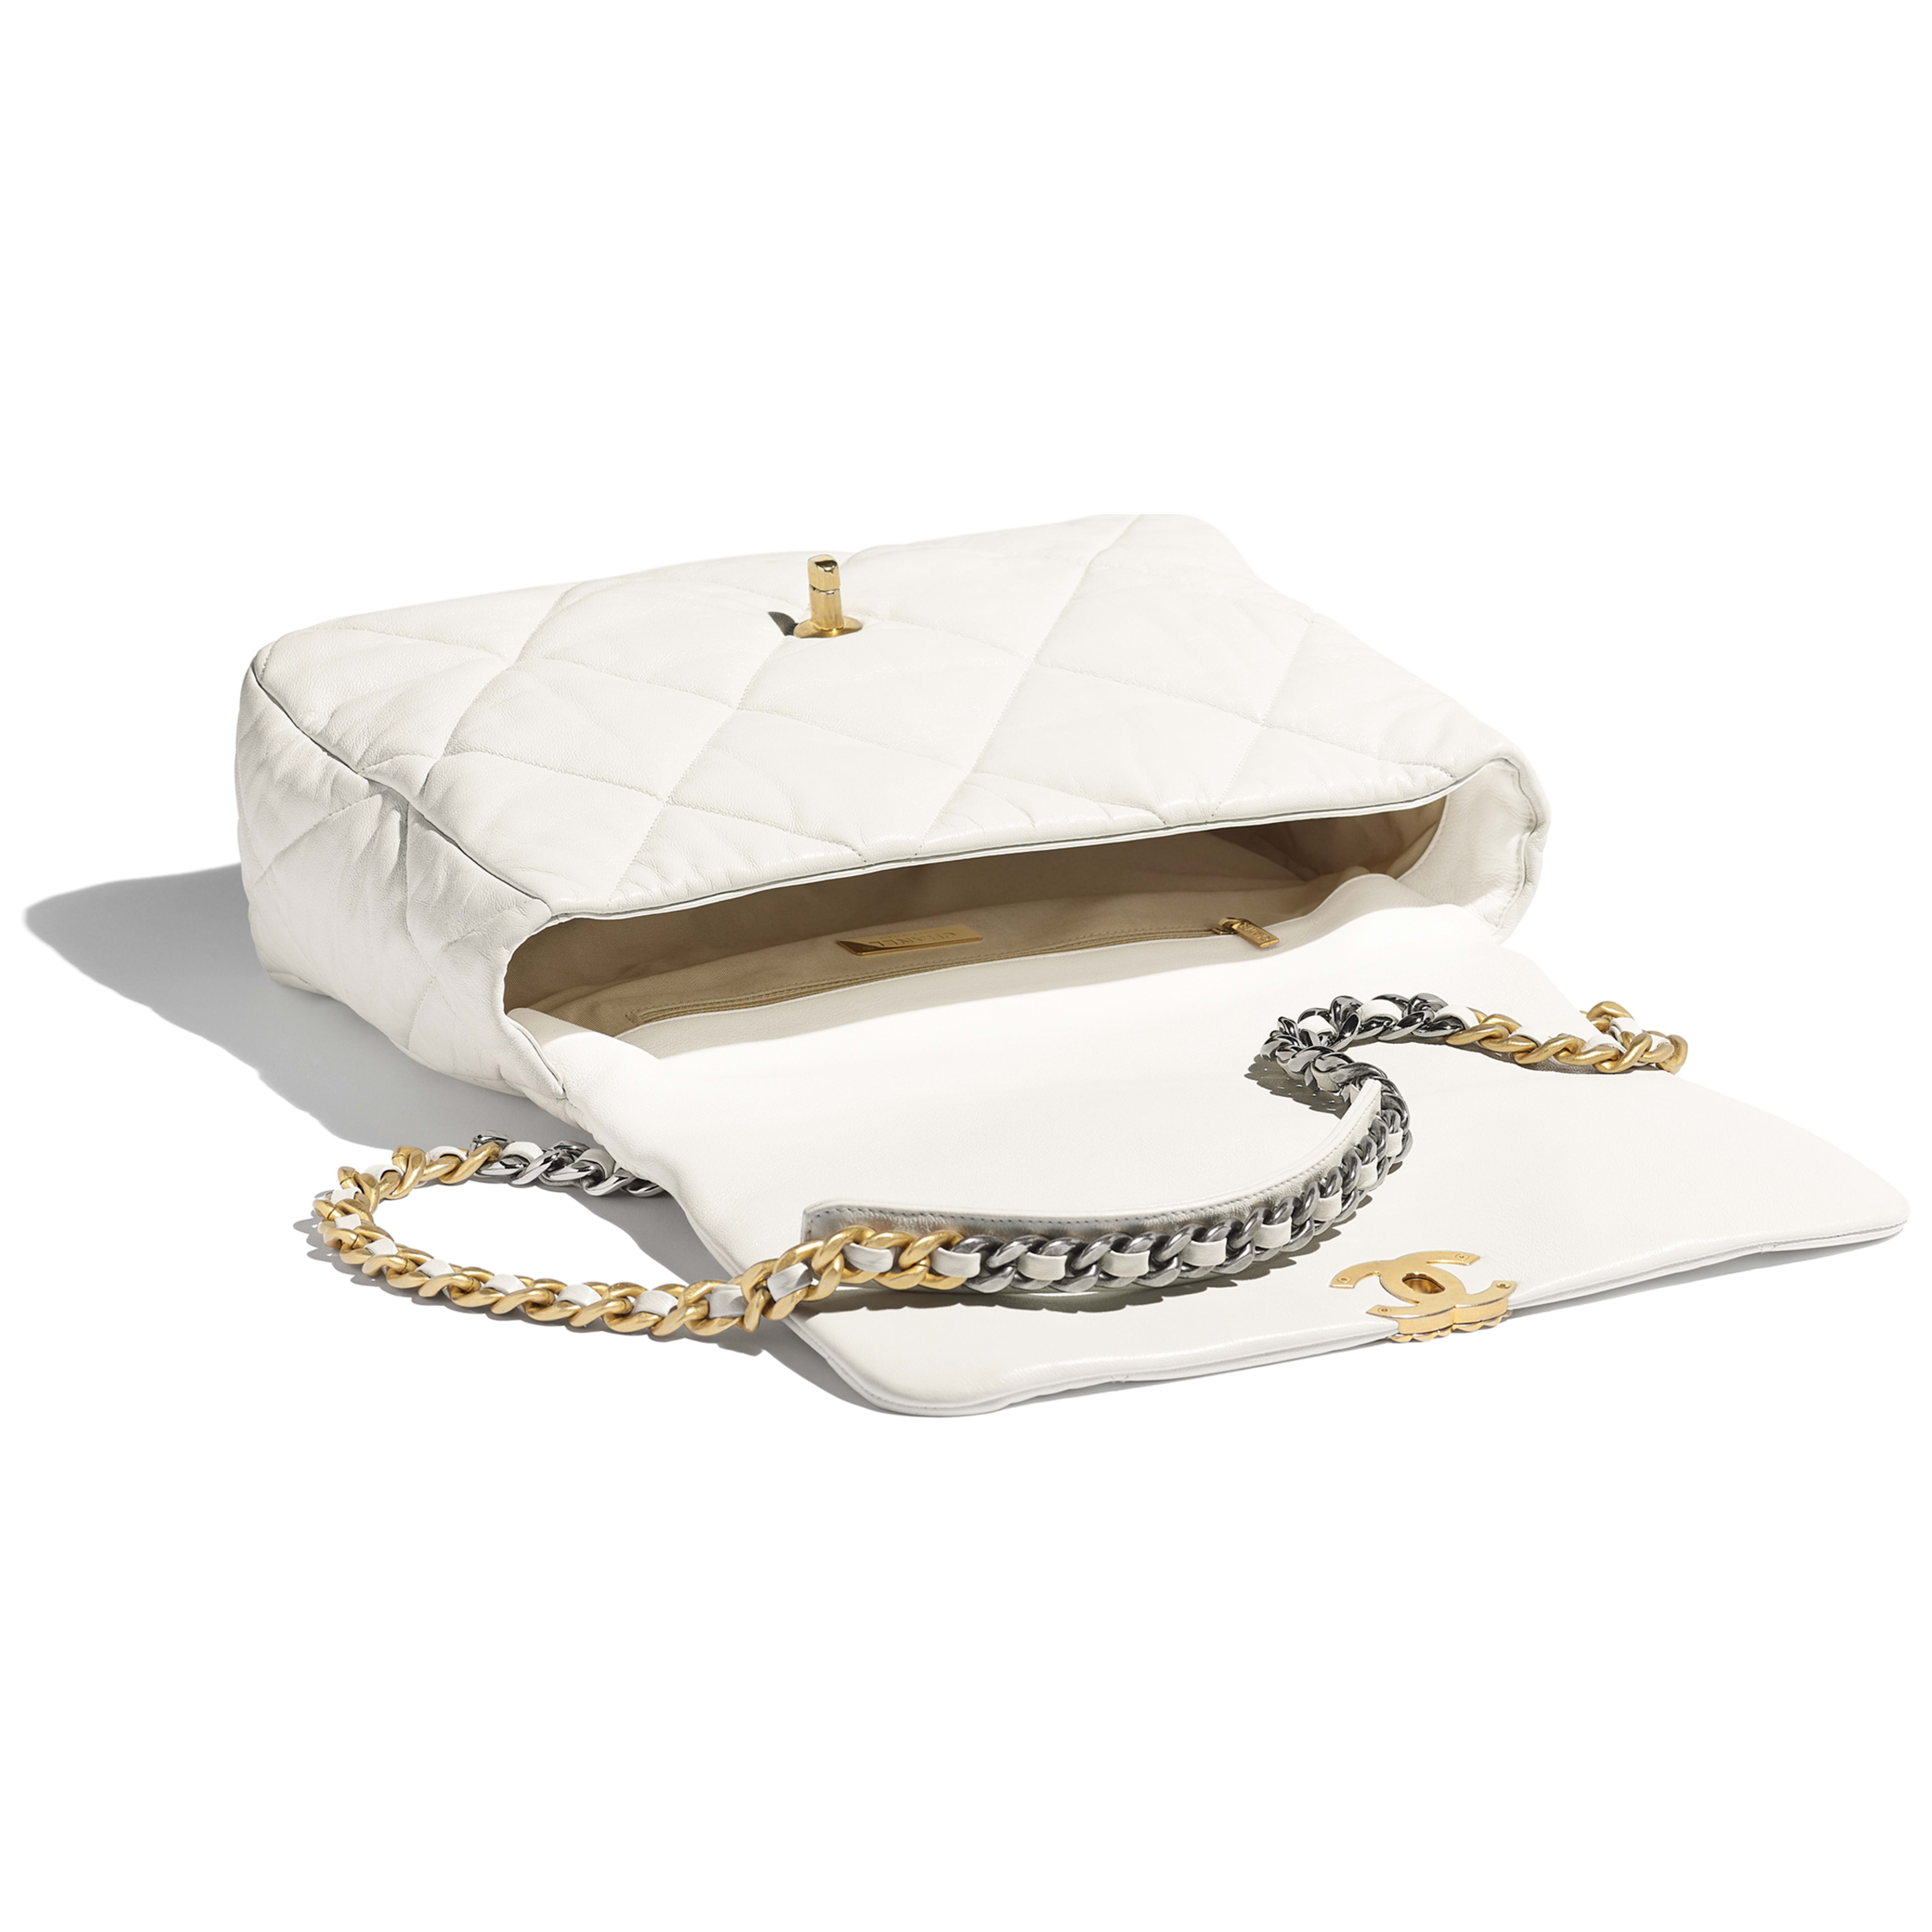 CHANEL 19 Maxi Flap Bag - White - Goatskin, Gold-Tone, Silver-Tone & Ruthenium-Finish Metal - Other view - see full sized version